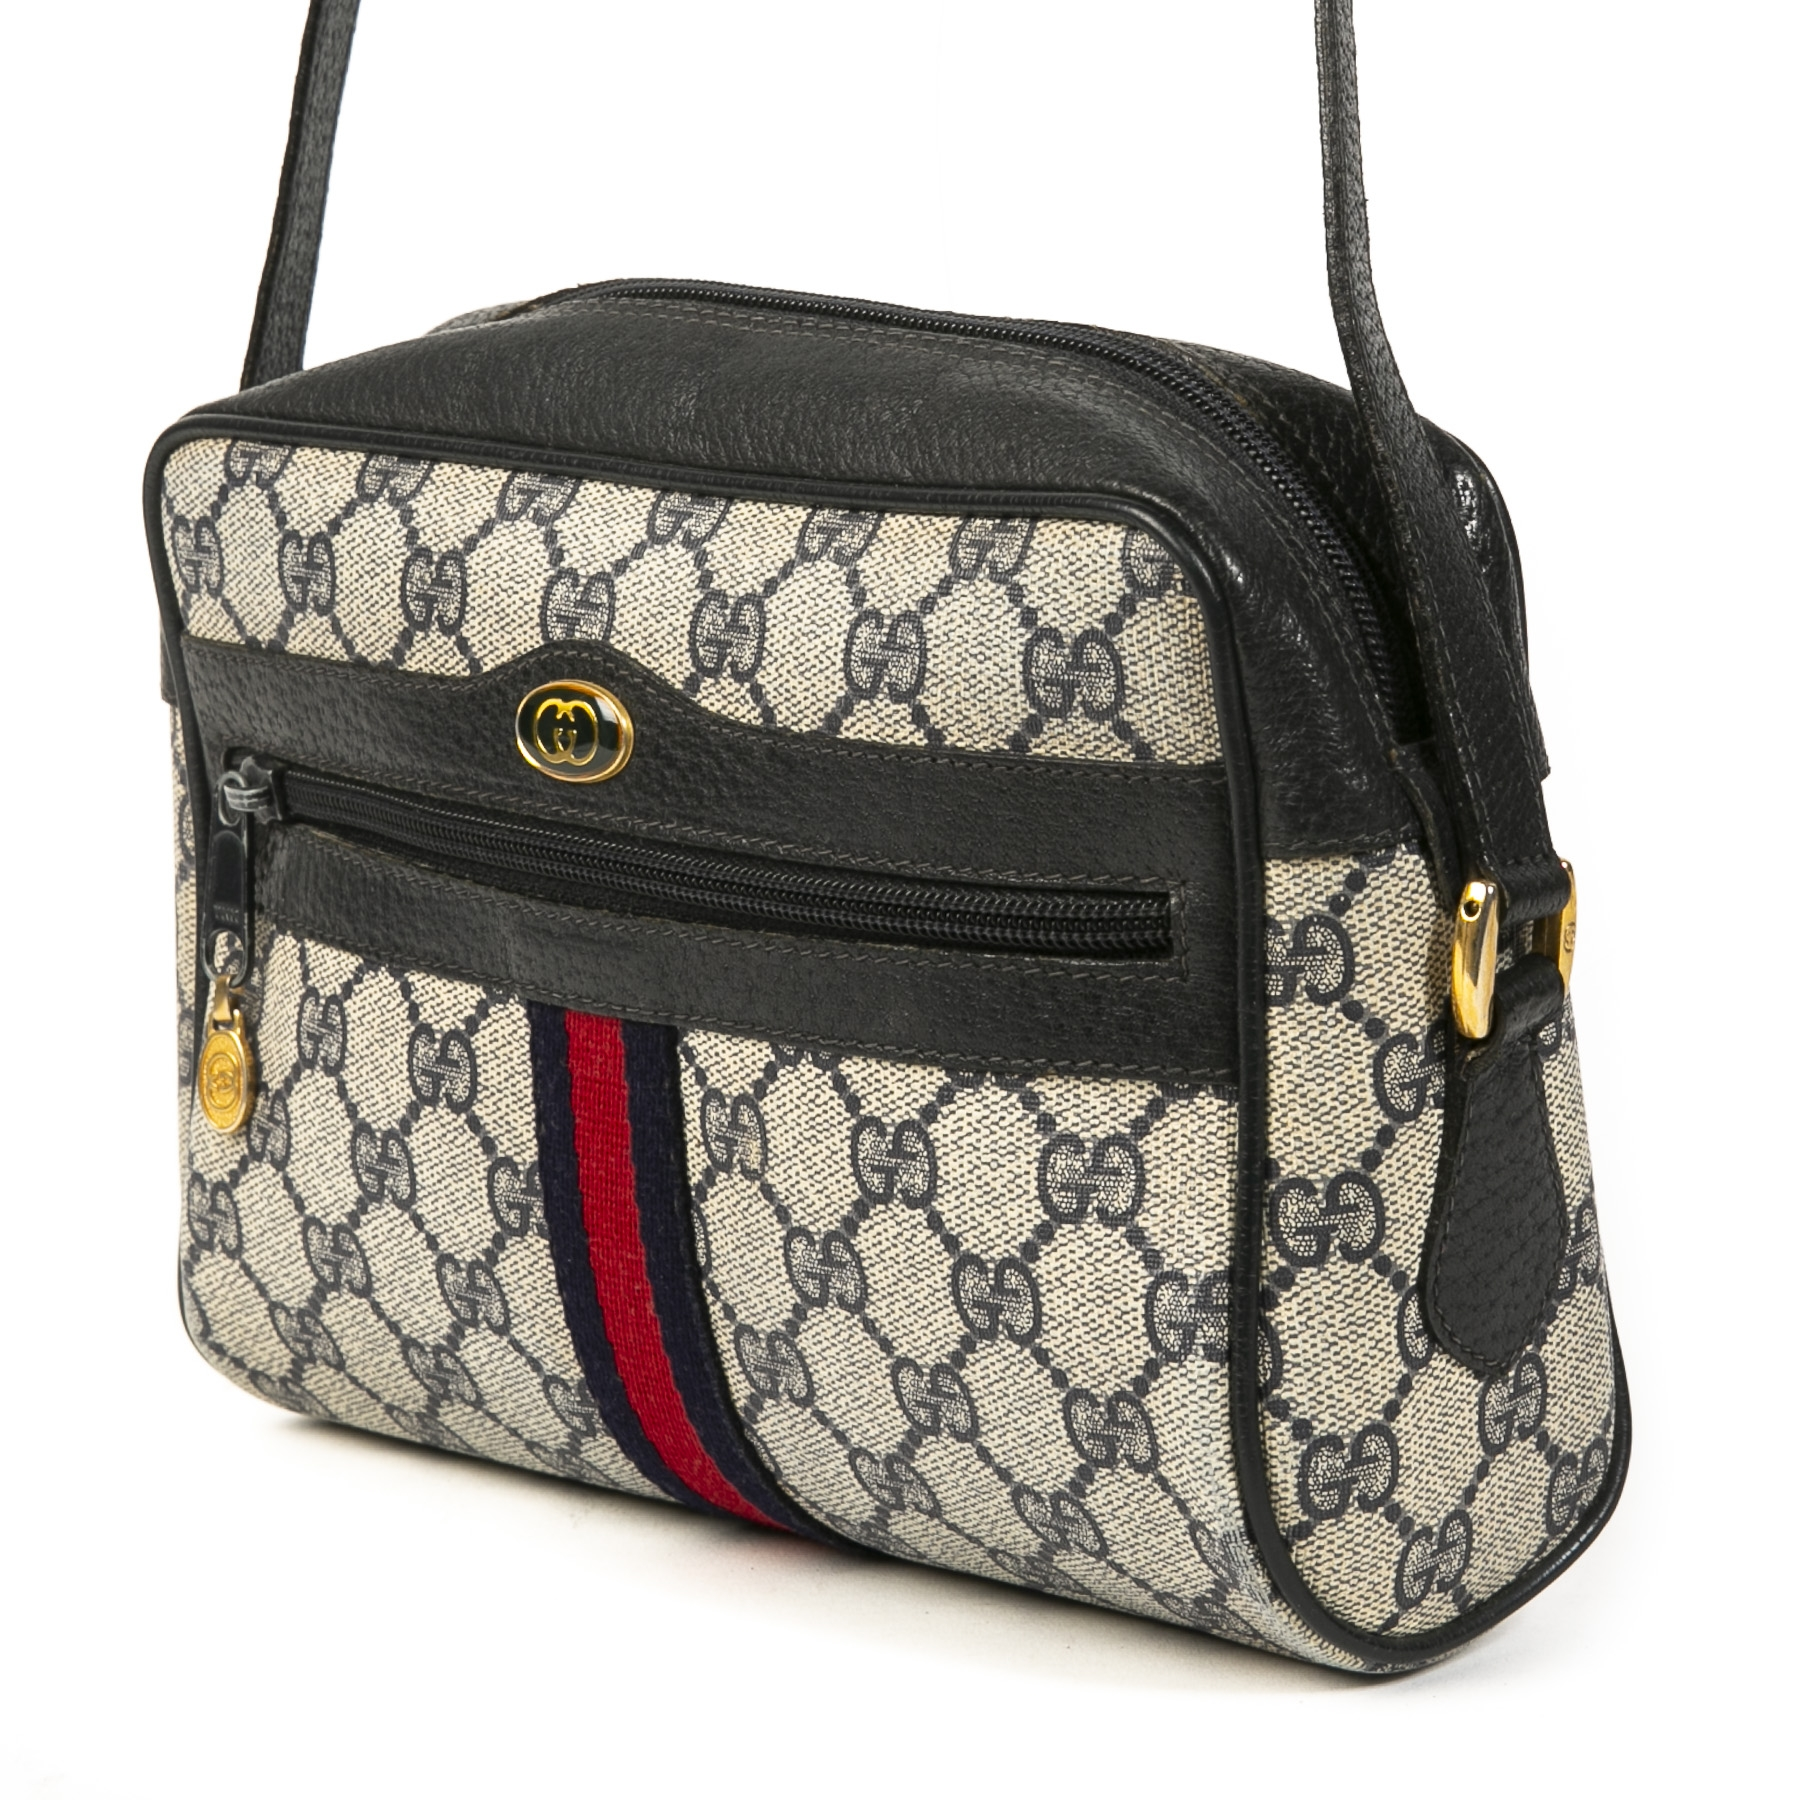 Authentic second-hand vintage Gucci Web Monogram Blue Crossbody Bag buy online webshop LabelLOV